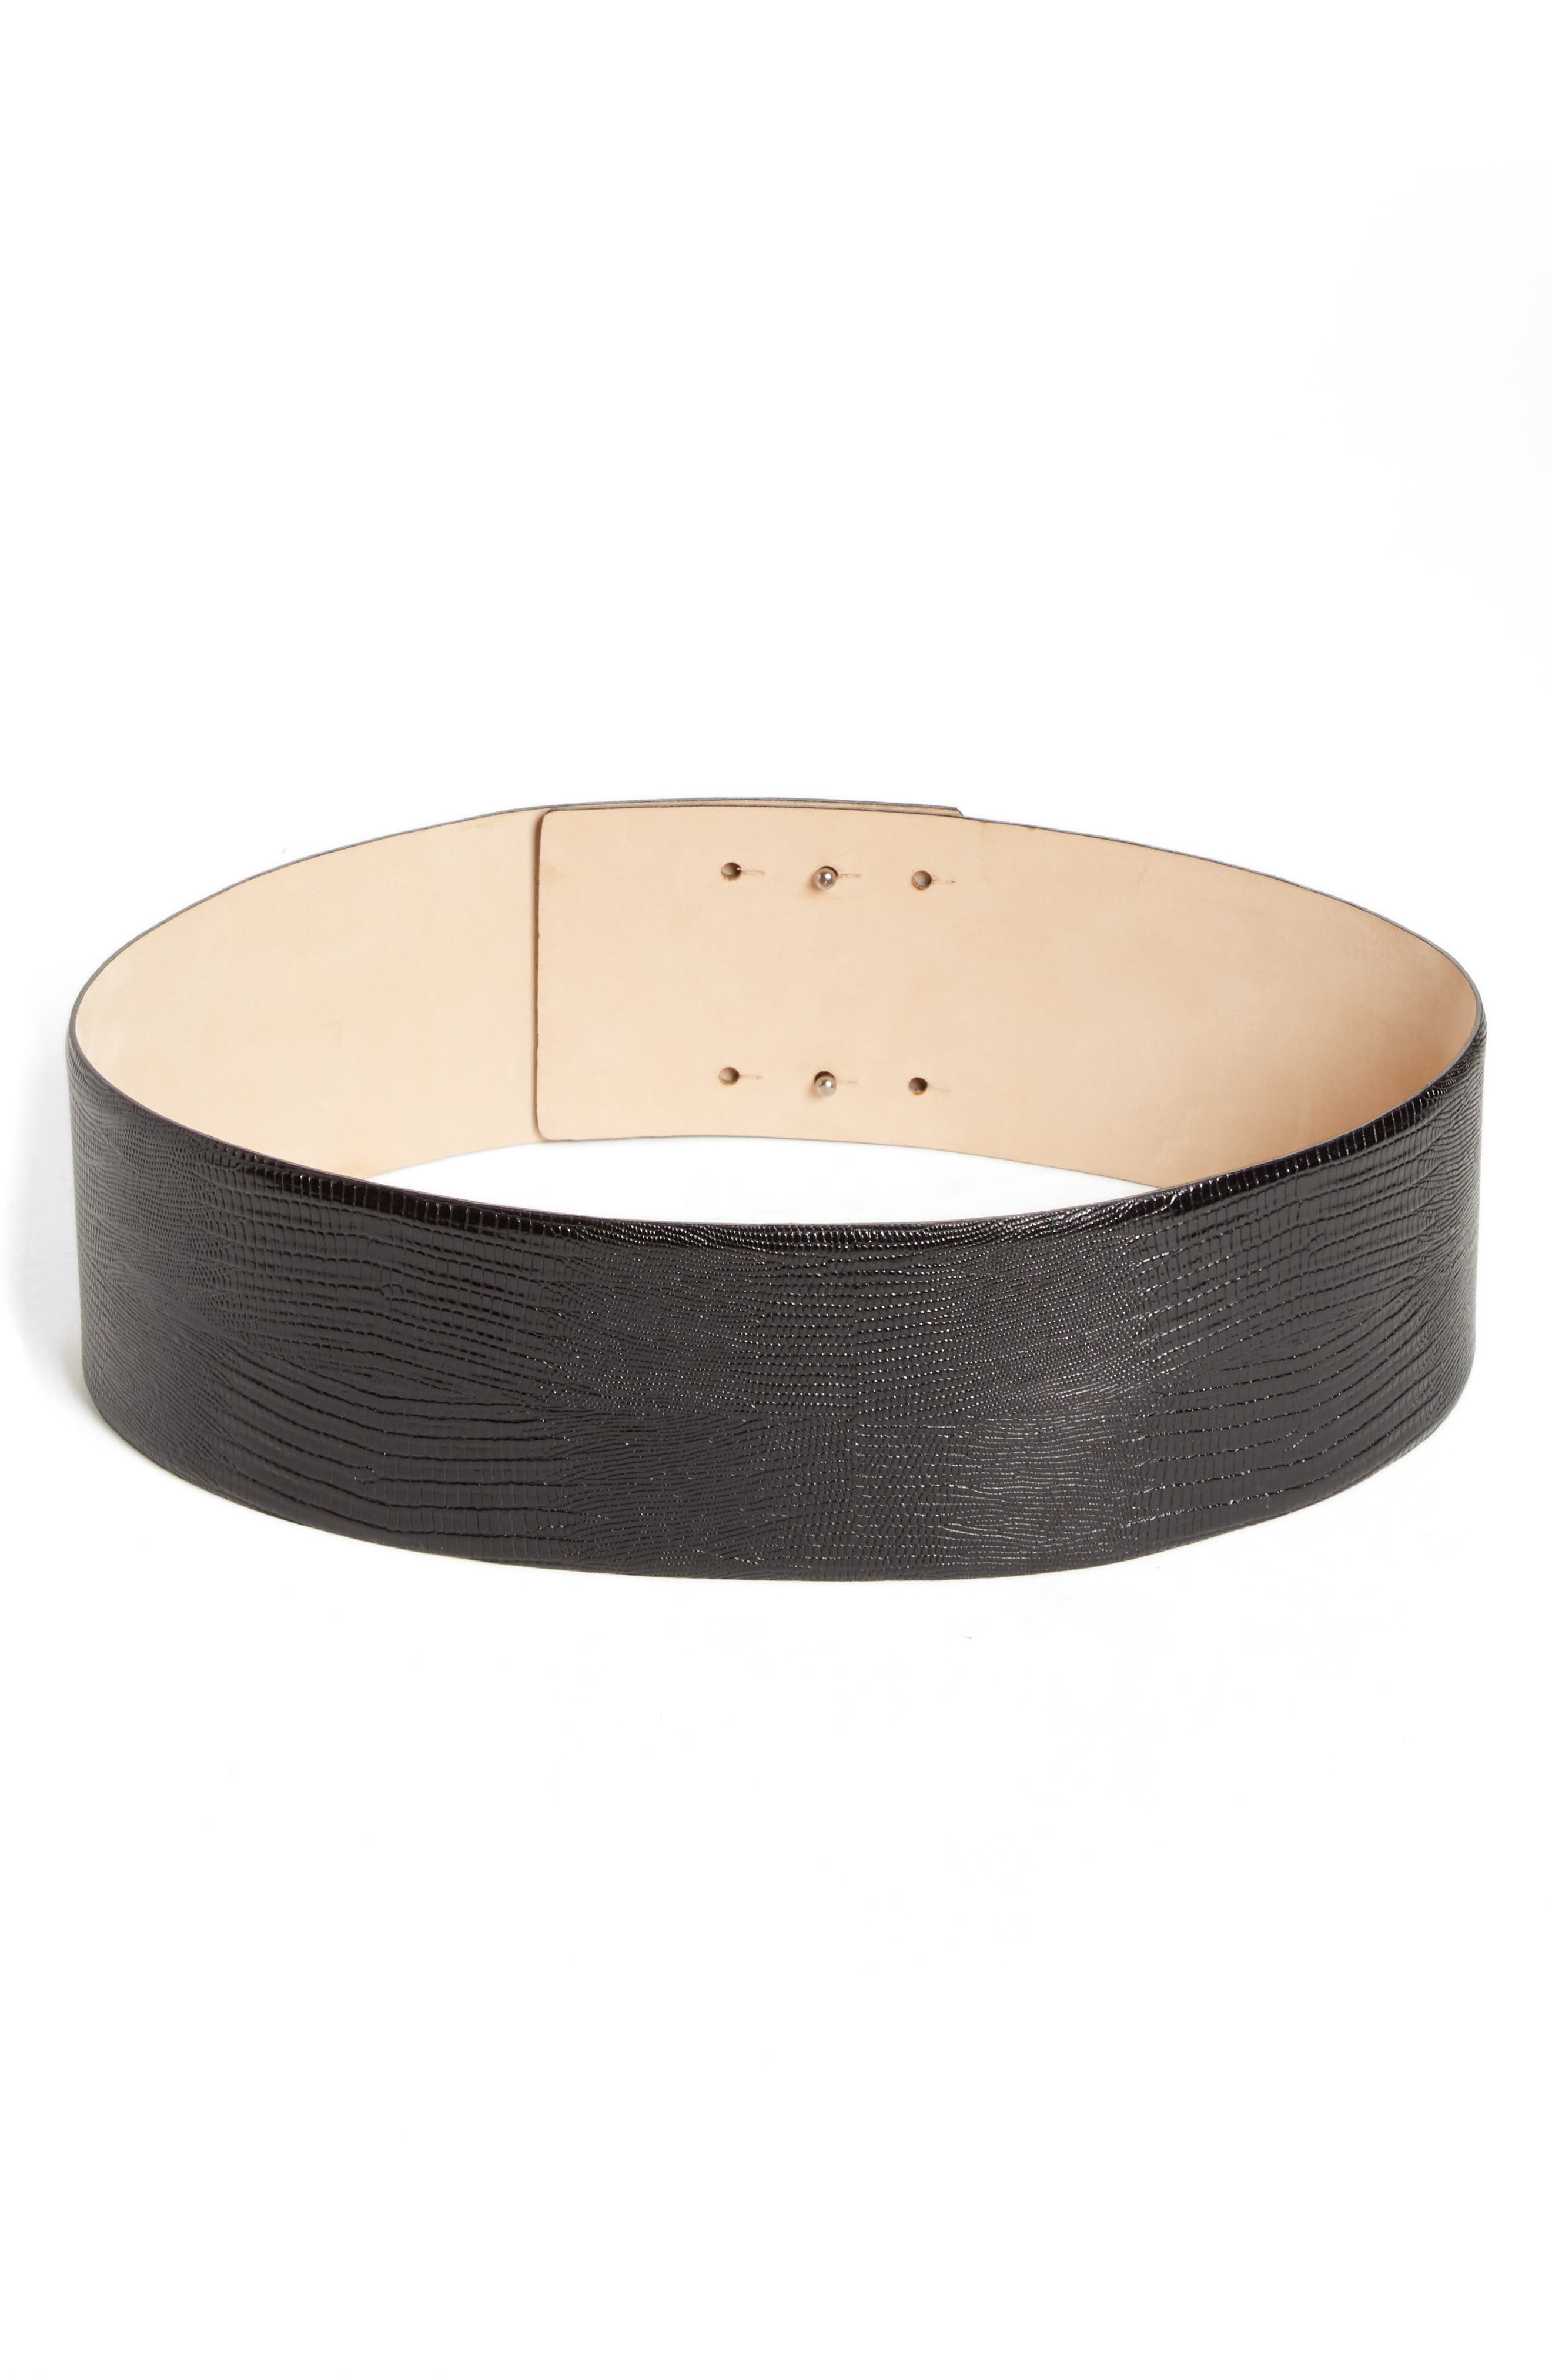 Max Mara Reptile Embossed Leather Belt